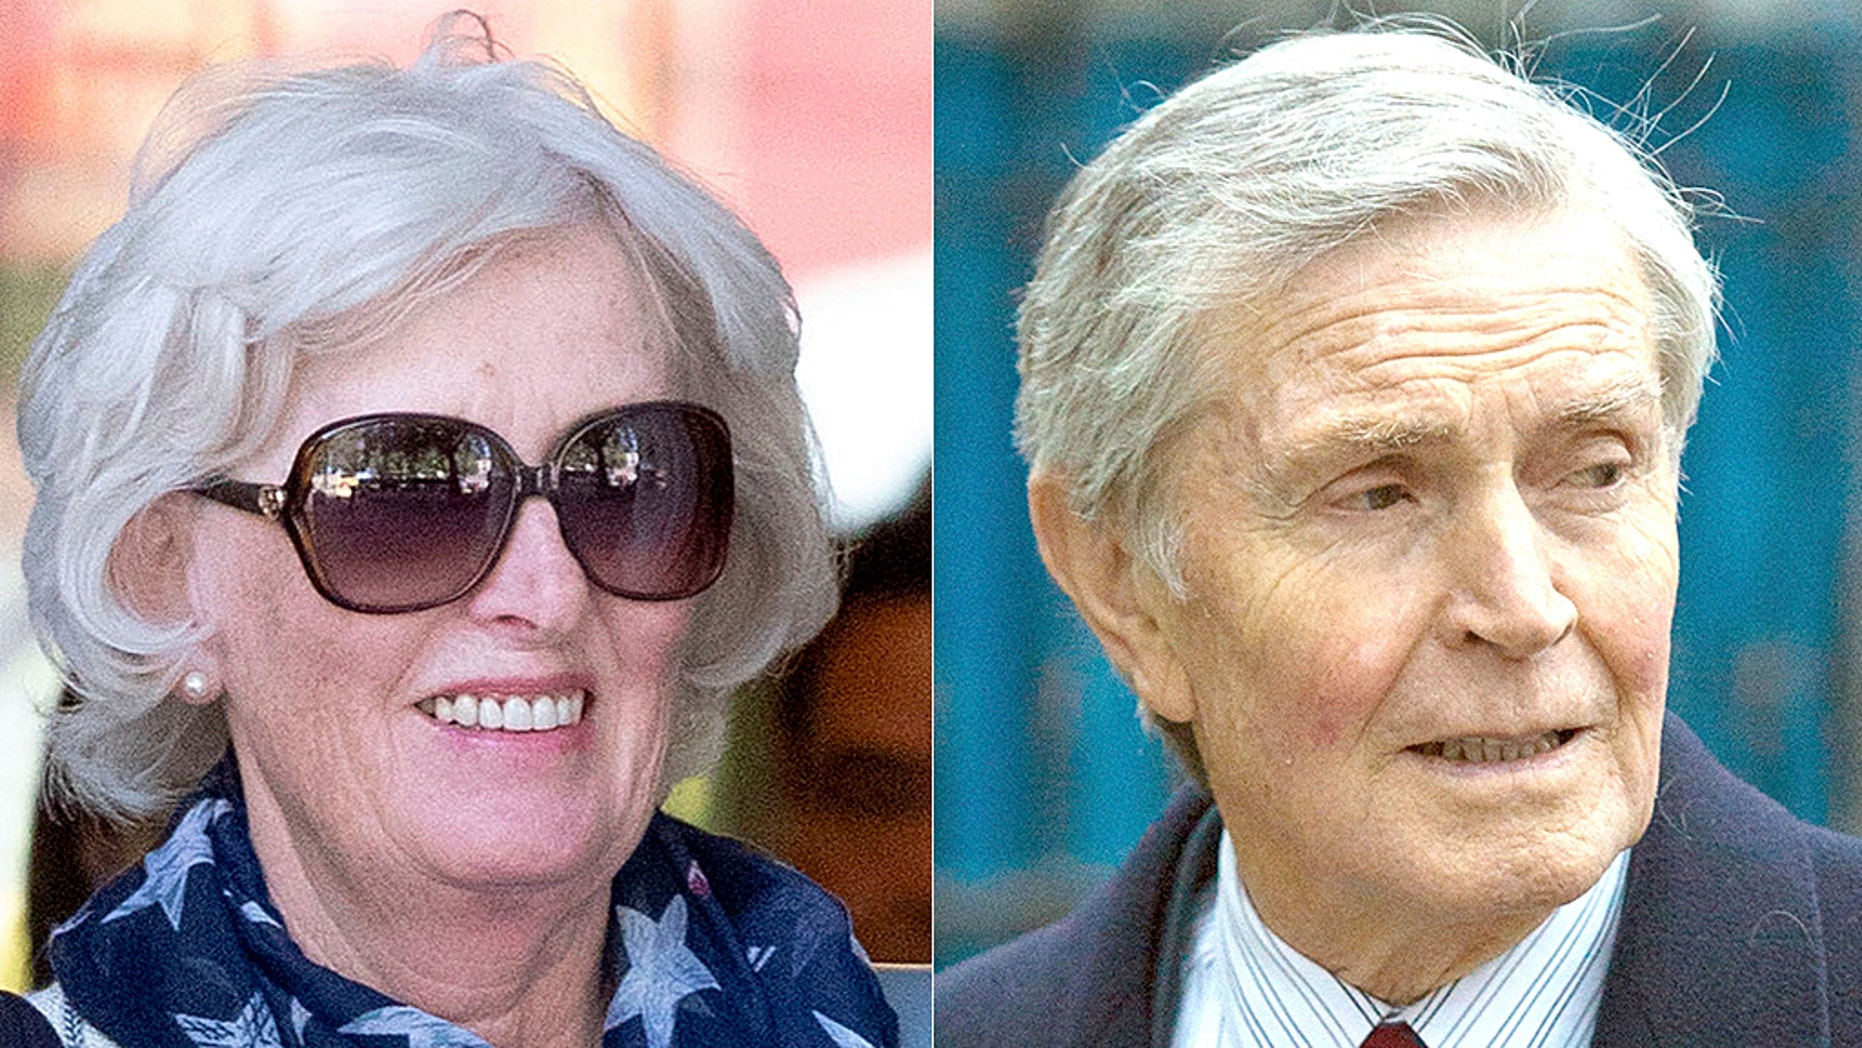 Tini Owens, 68, is fighting get divorced from her husband, High Owens, 60.